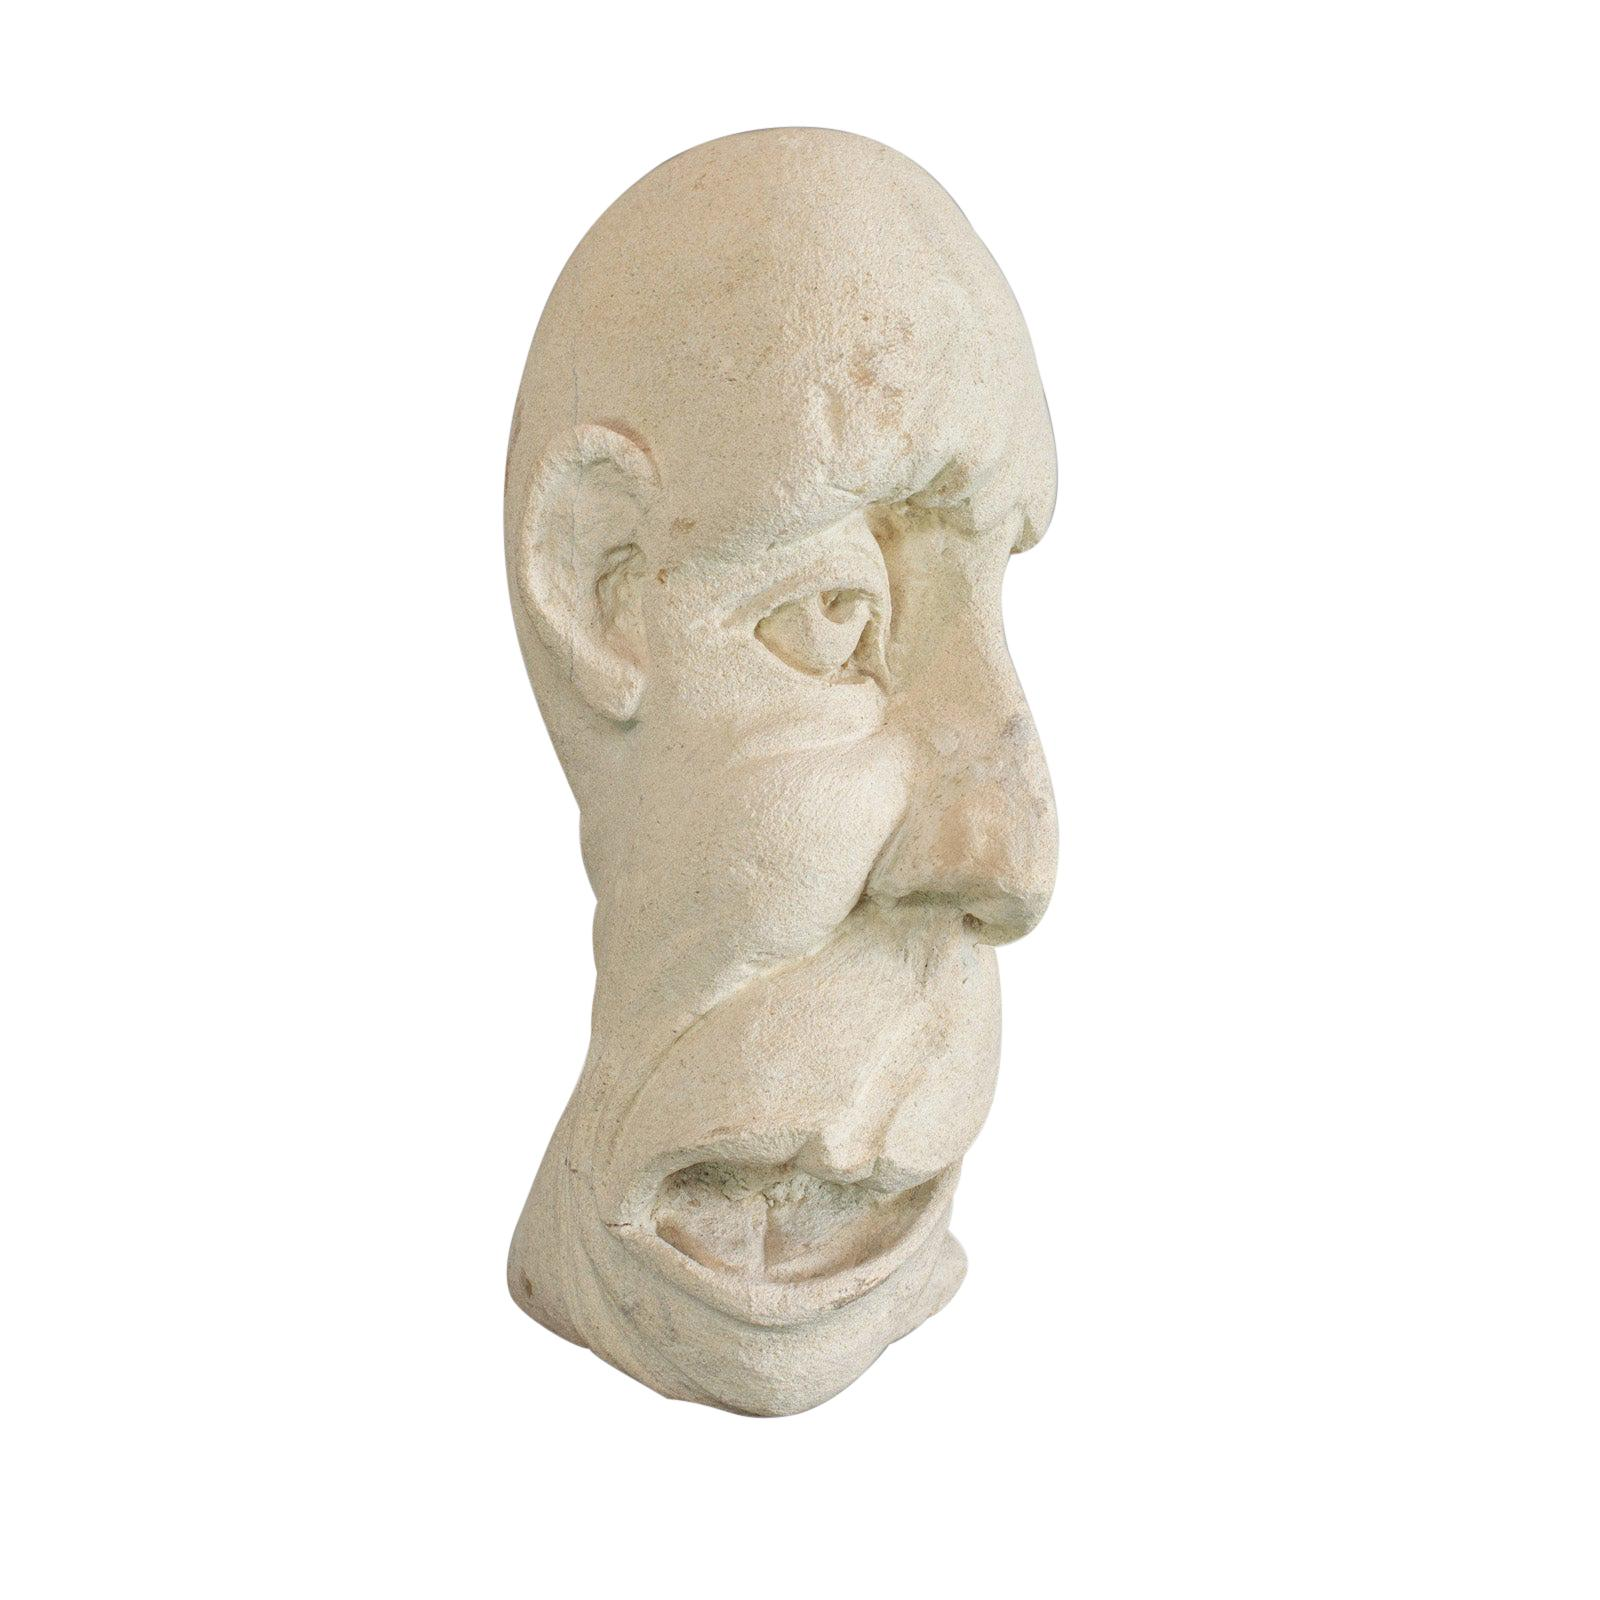 Twisted Face Bust, Dominic Hurley, English, Bath Stone, Sculpture